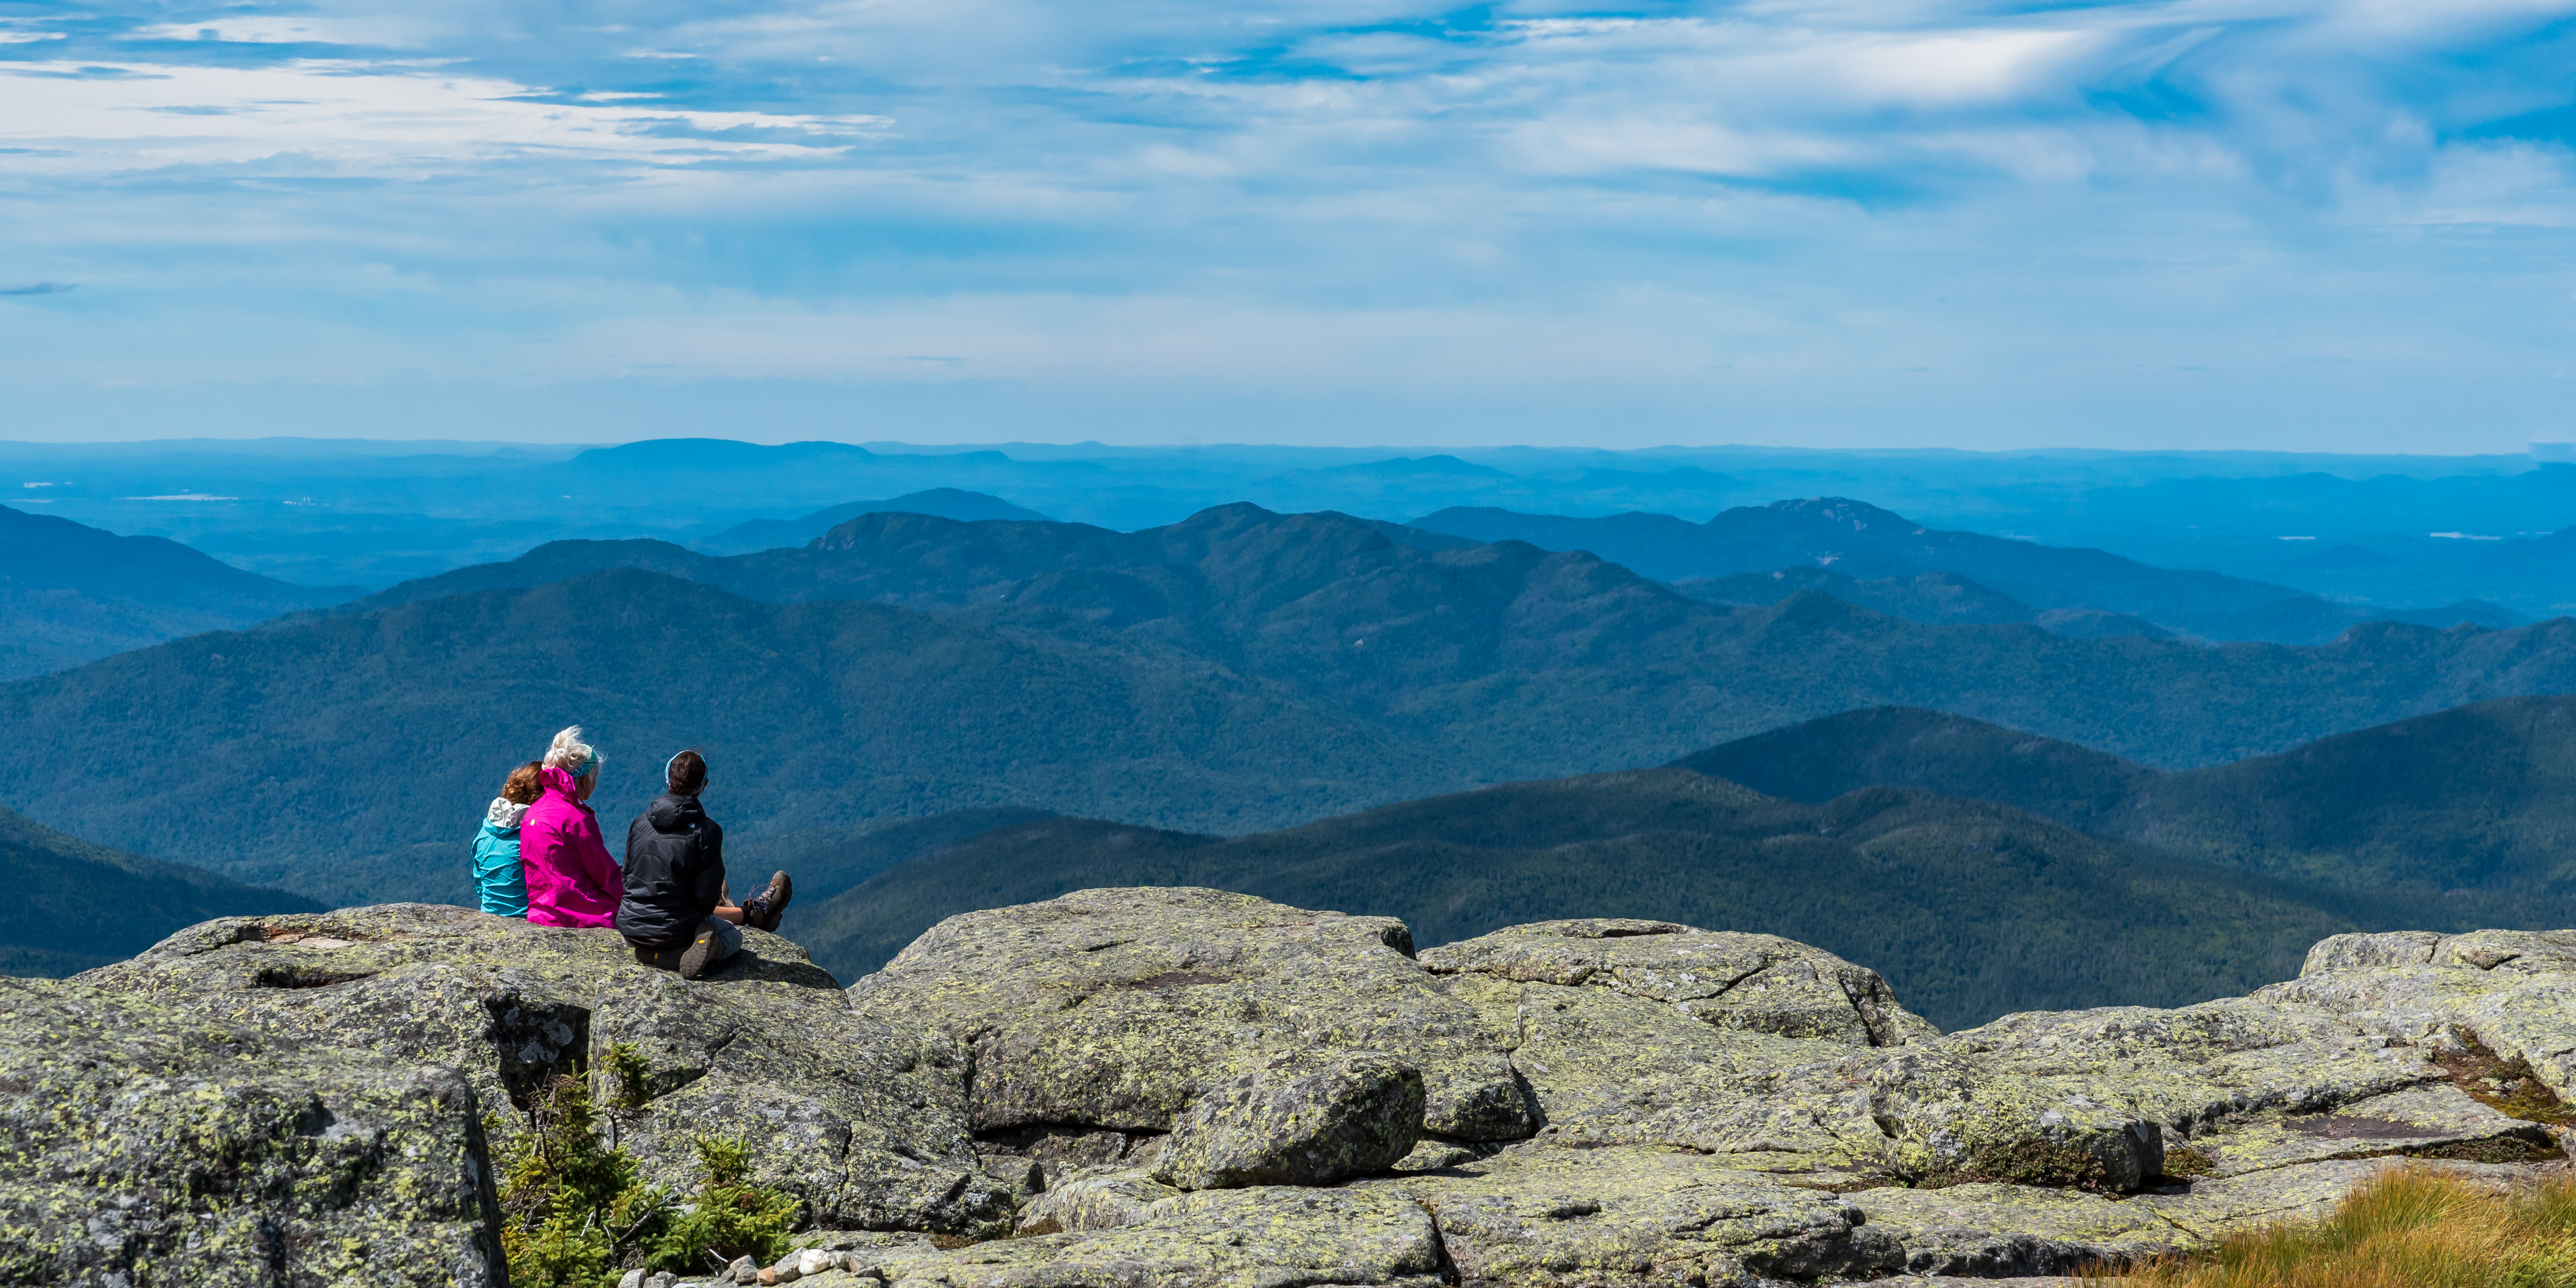 A summit steward kneels next to two hikers